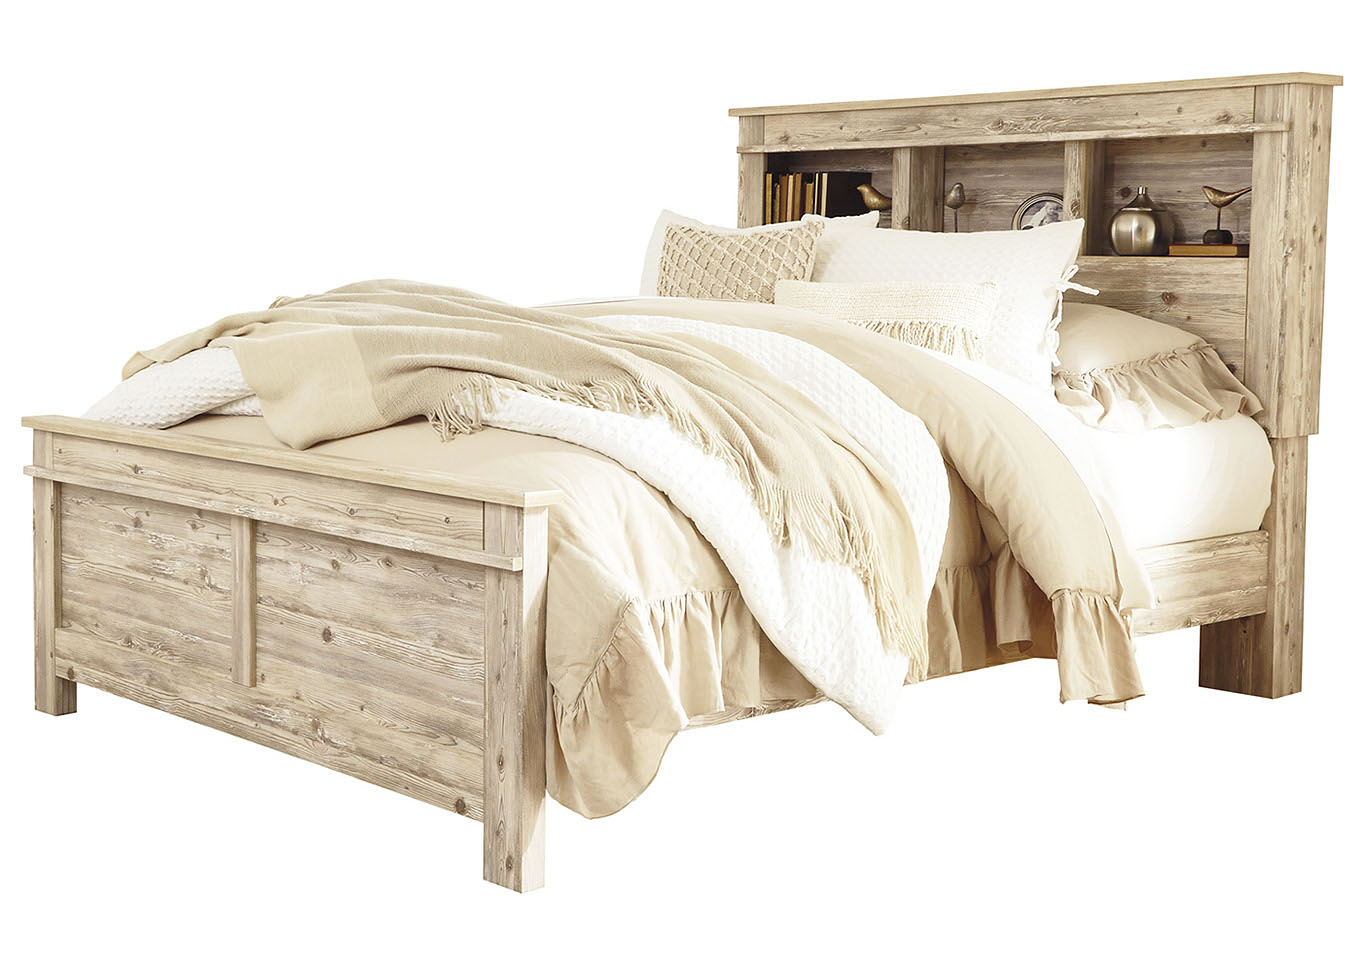 Willabry Weathered Beige Bookcase Headboard Queen Panel Bed,Signature Design By Ashley